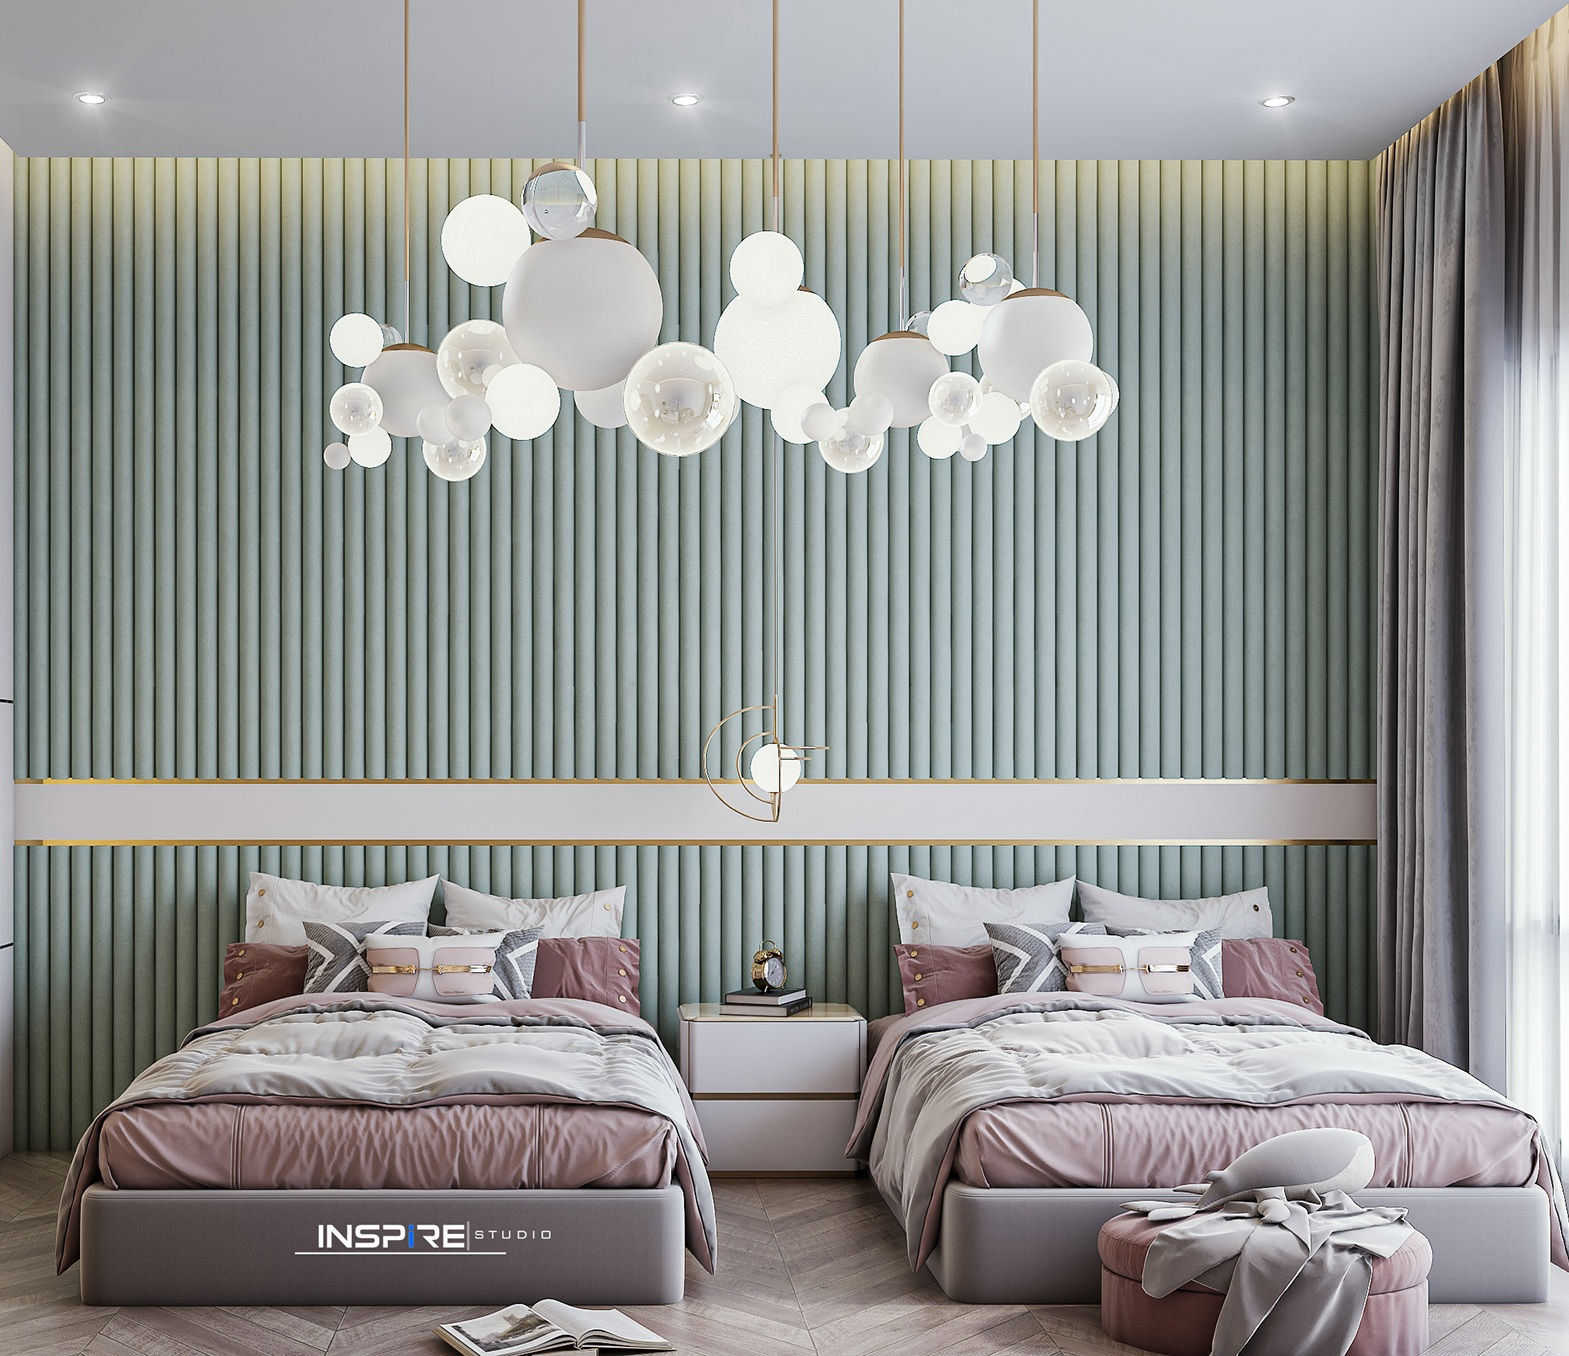 Modern Green and Gold Themed Kids Bedroom With Chandelier Lights